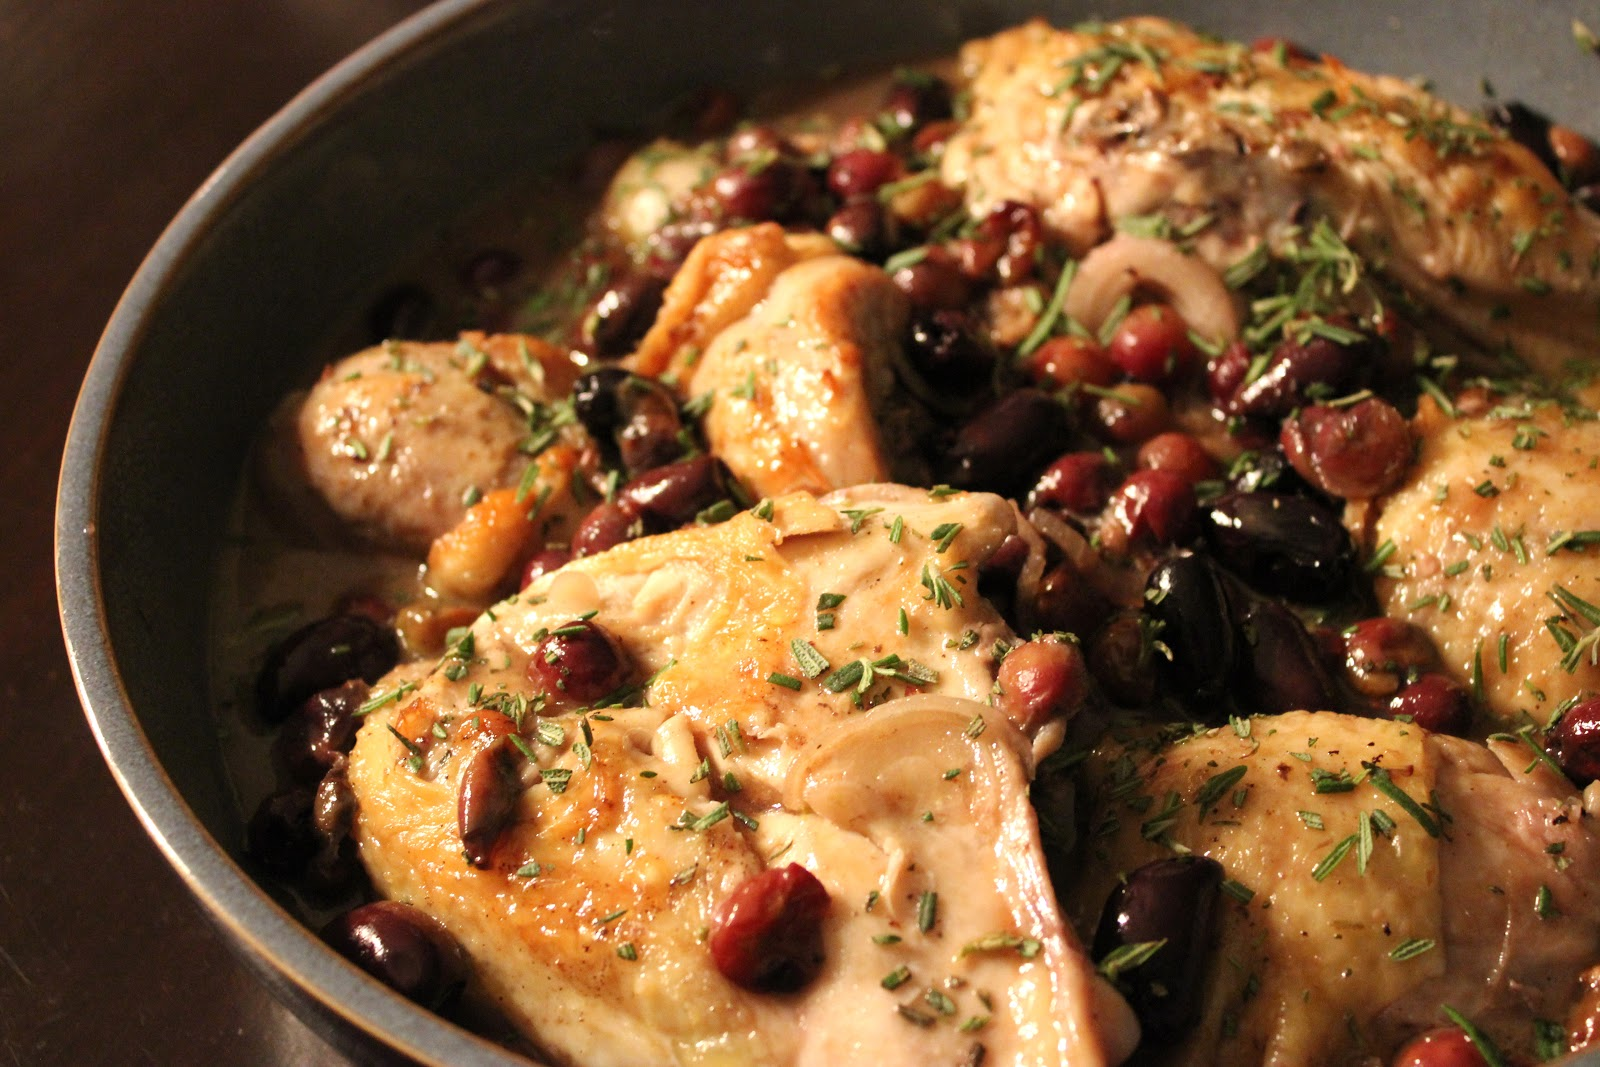 Harvest Roast Chicken with Grapes, Olives and Rosemary